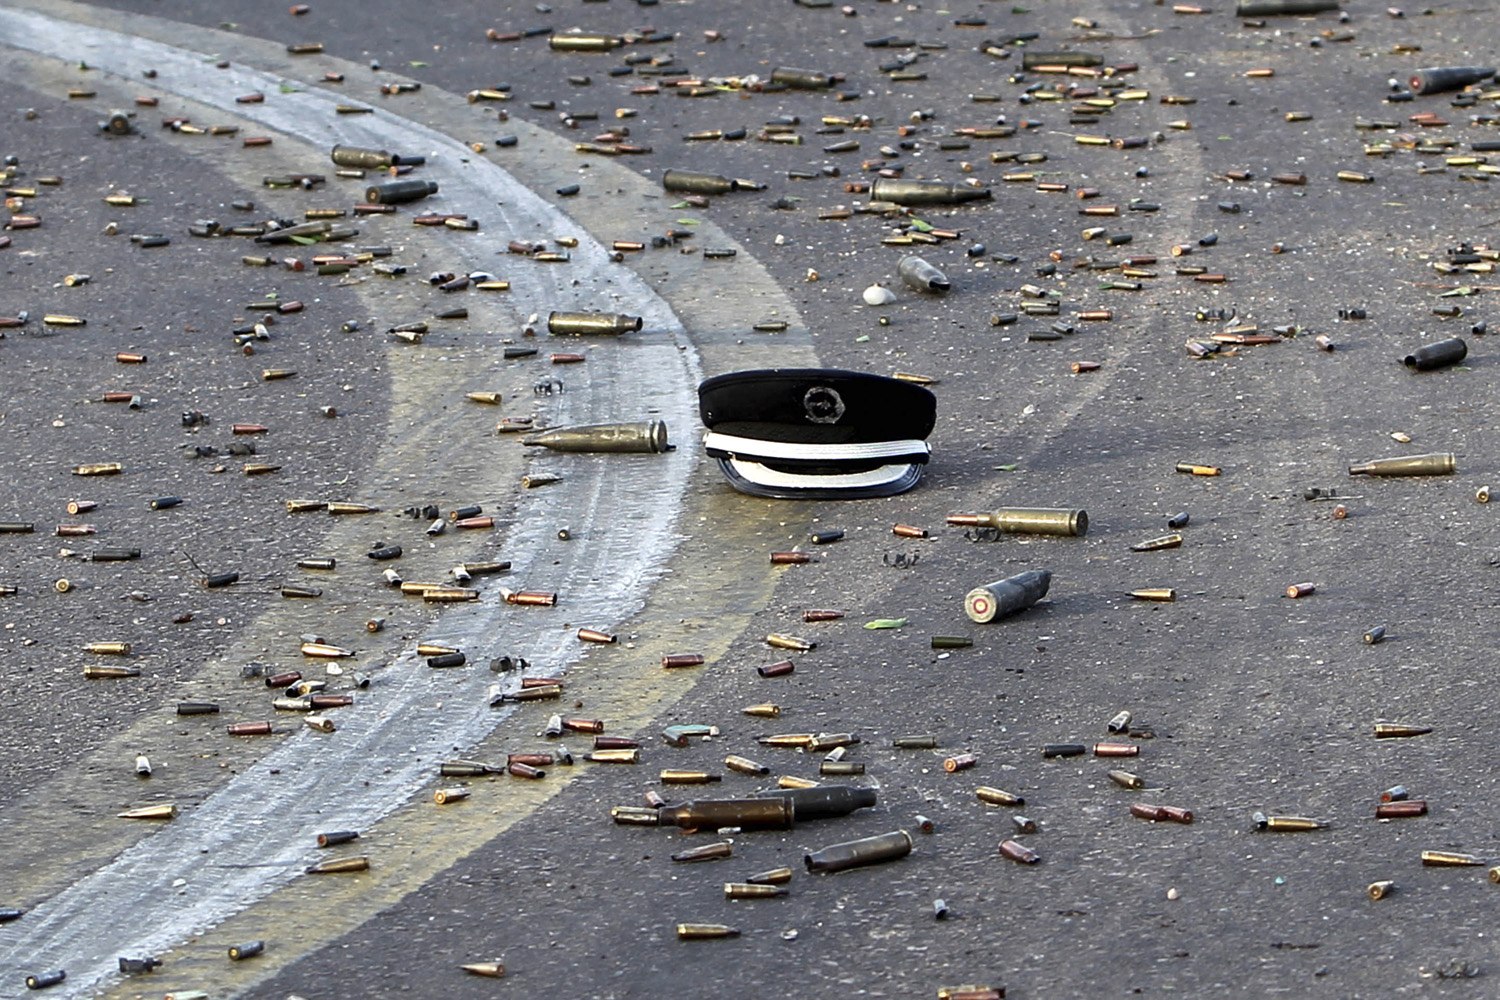 October 9, 2011. A hat that belonged to a member of Gaddafi's forces is seen on the ground amid spent bullet cartridges during heavy clashes against anti-Gaddafi forces outside the State Security compound in Sirt.